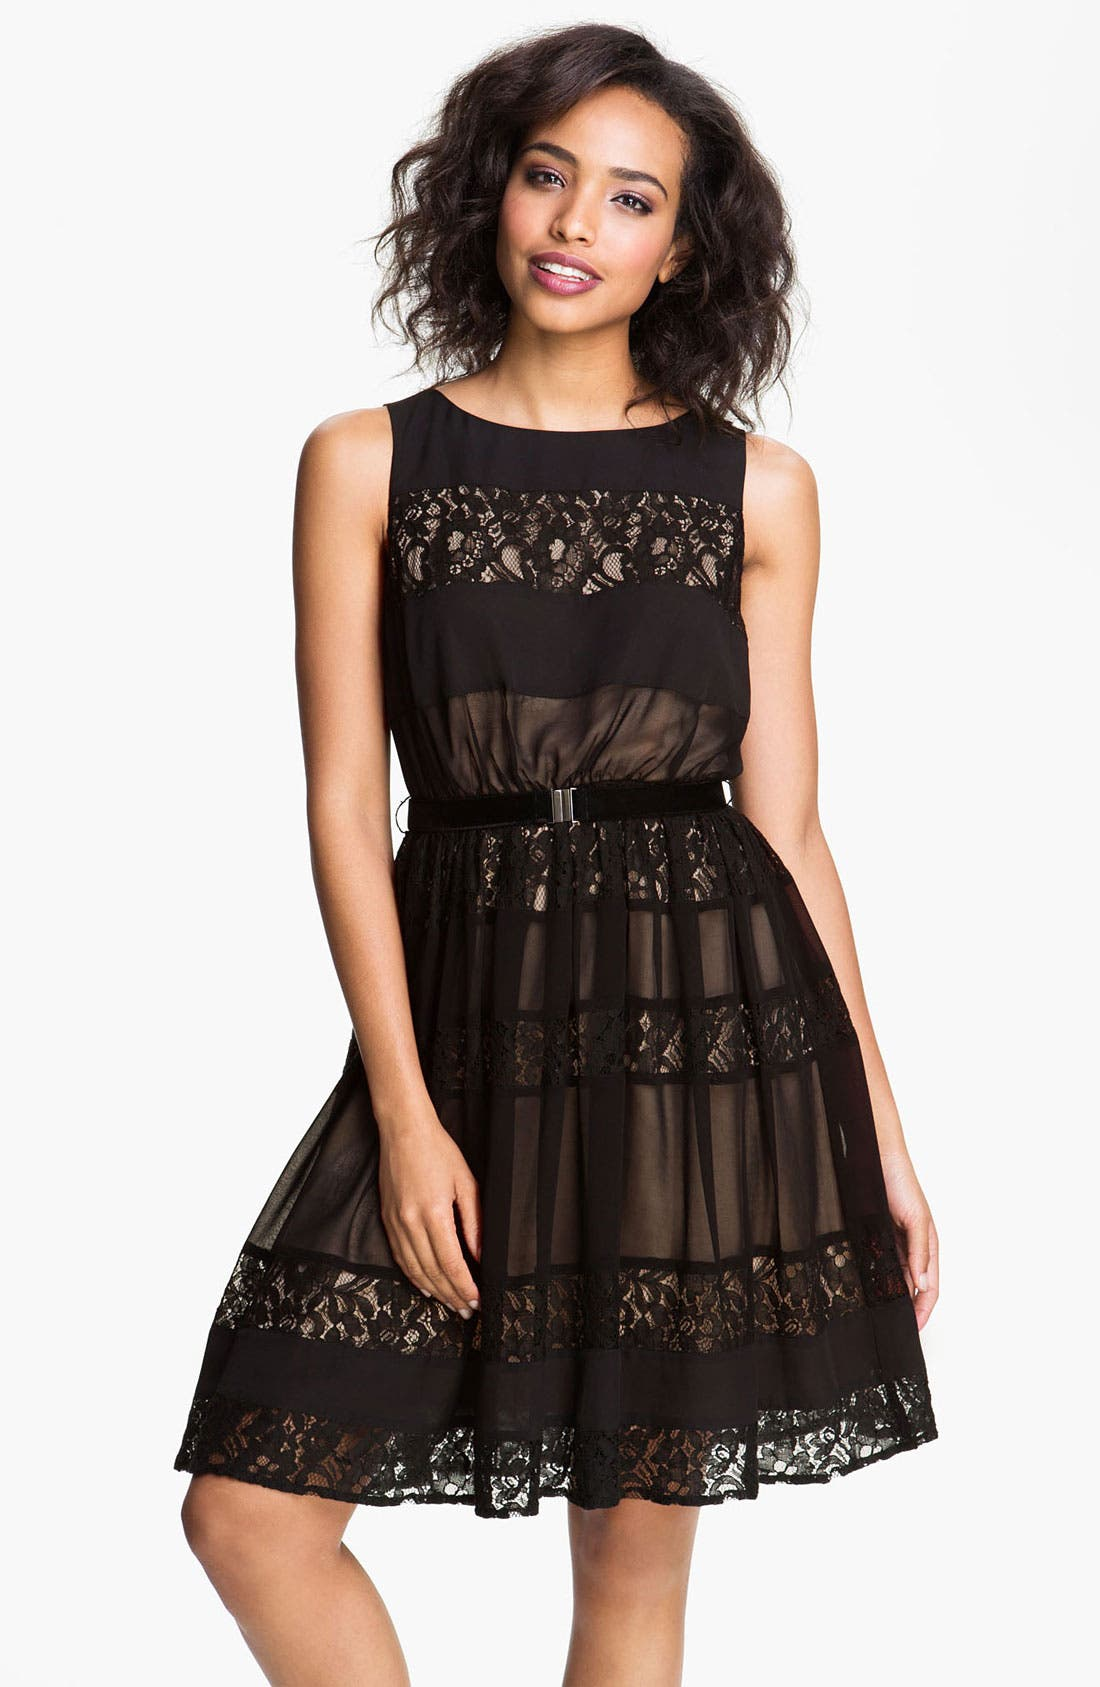 Alternate Image 1 Selected - Jessica Simpson Lace Inset Fit & Flare Dress